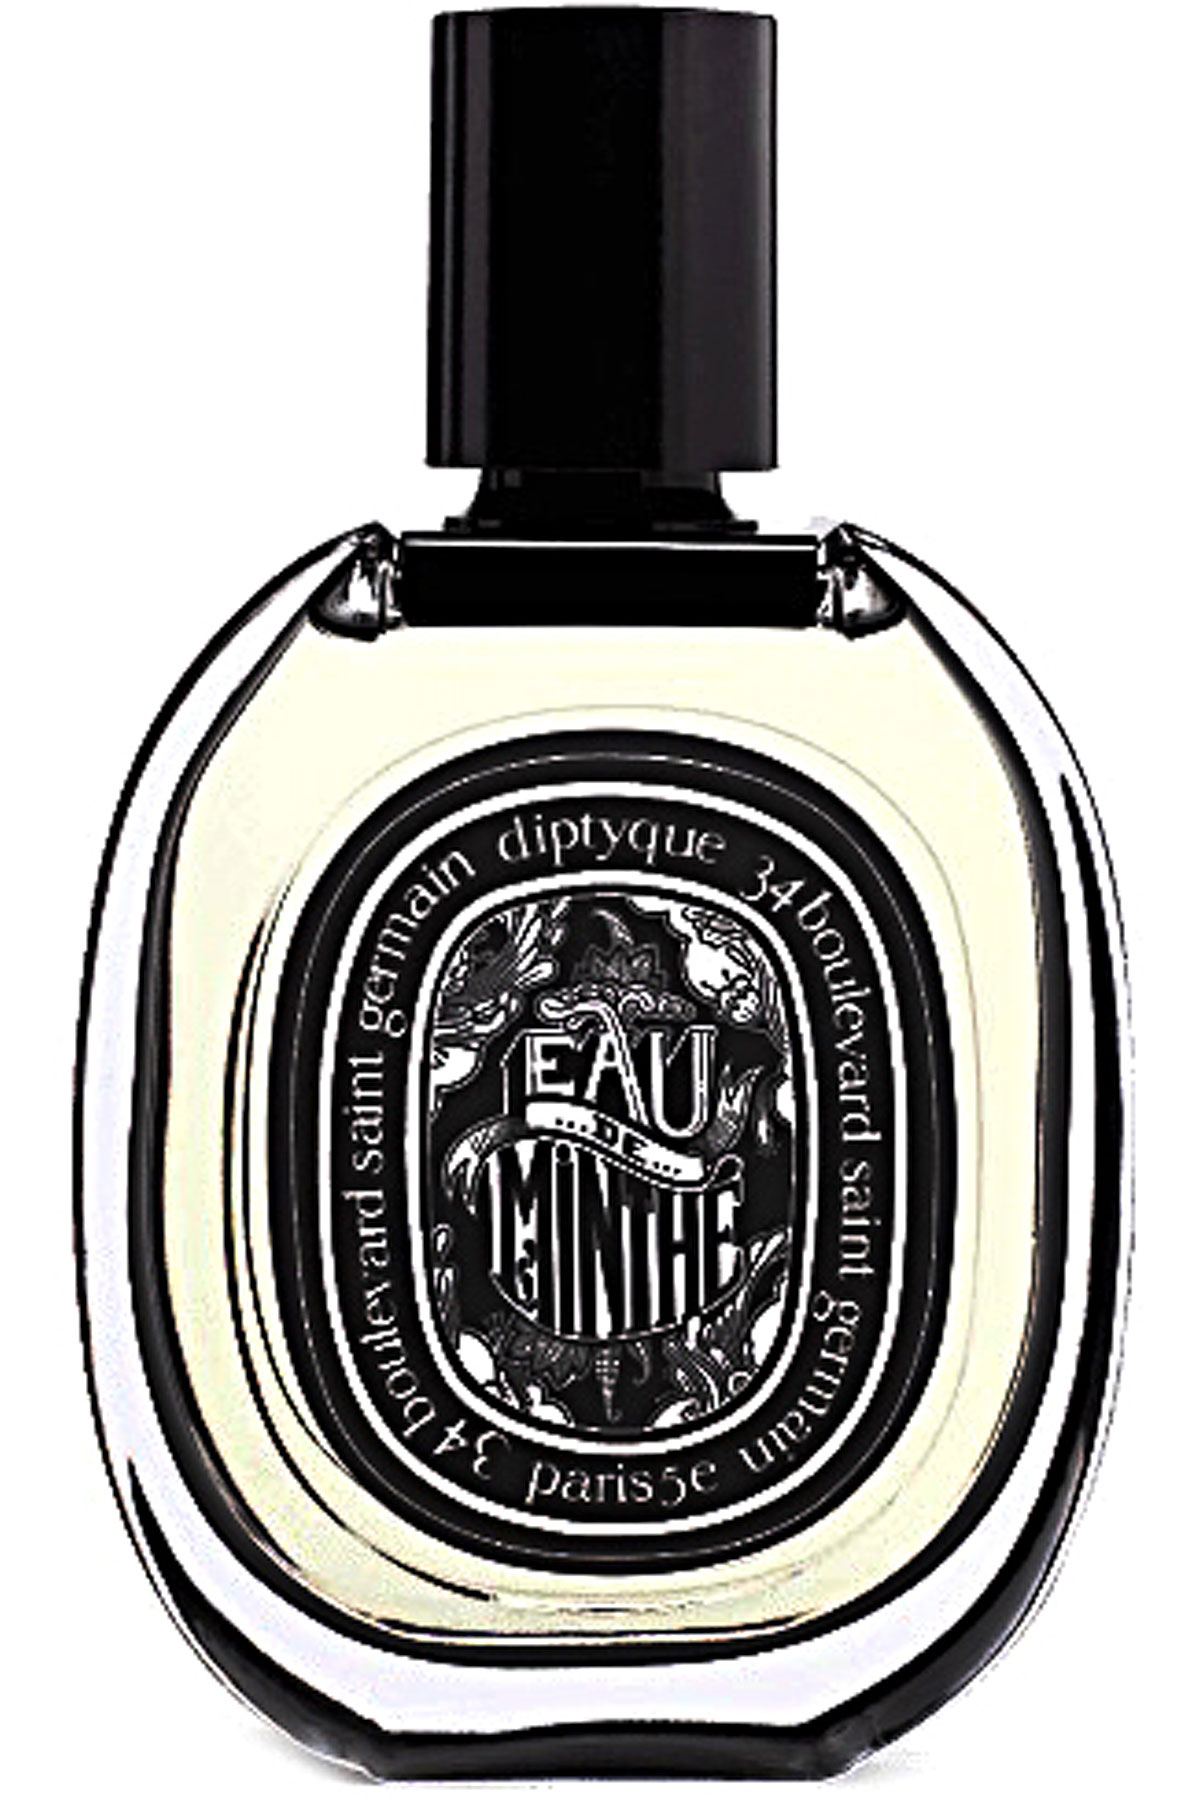 Diptyque Fragrances for Men, Eau De Minthe - Eau De Parfum - 75 Ml, 2019, 75 ml